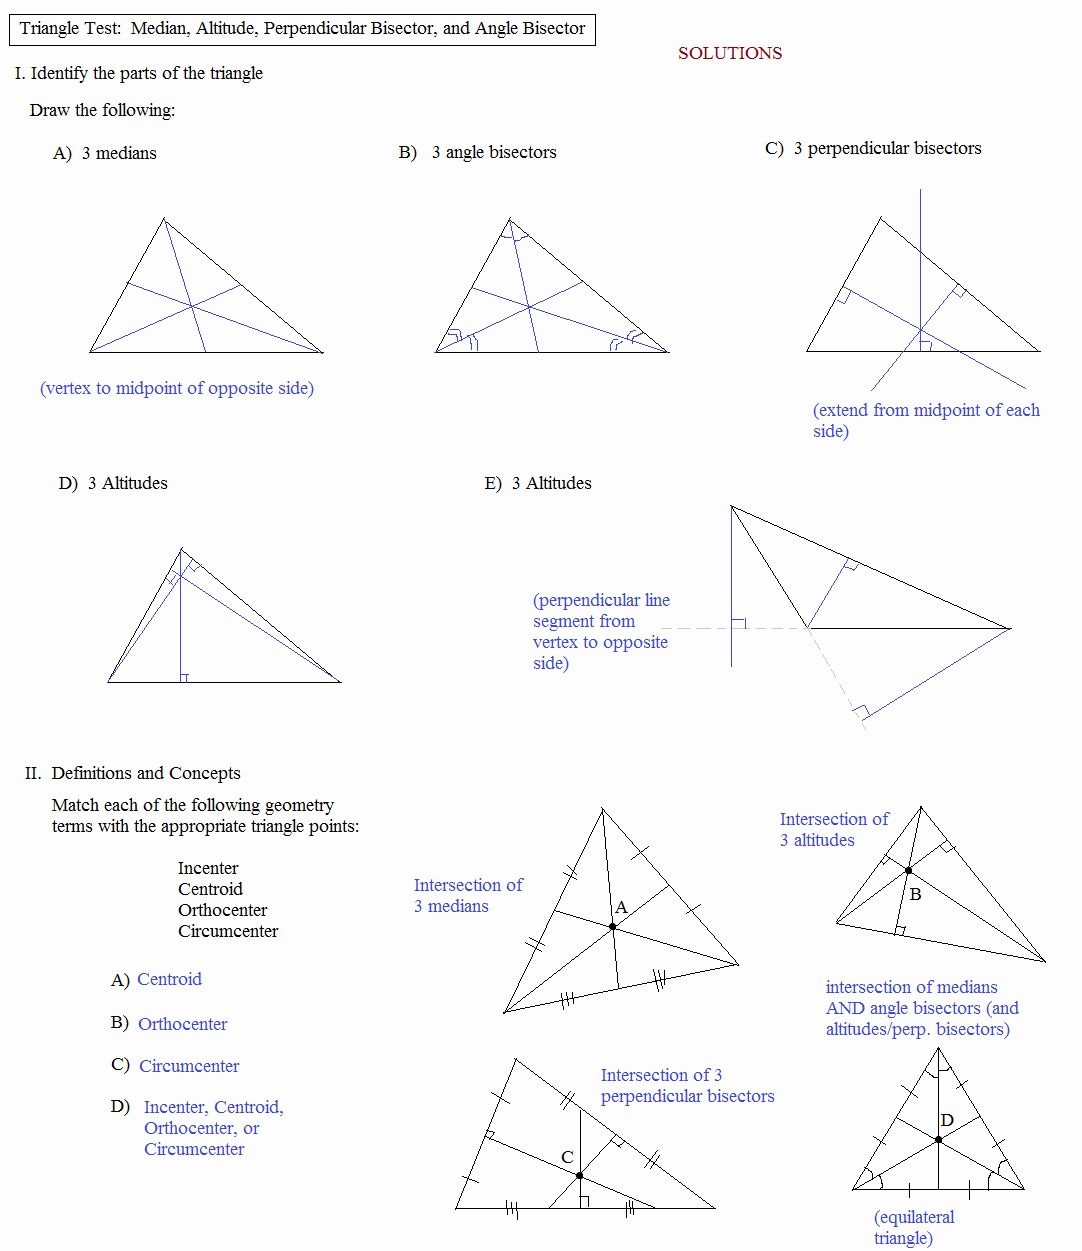 7339415a1b54e1e9b827809fe151fc4f - Applications Of Centroid Of A Triangle